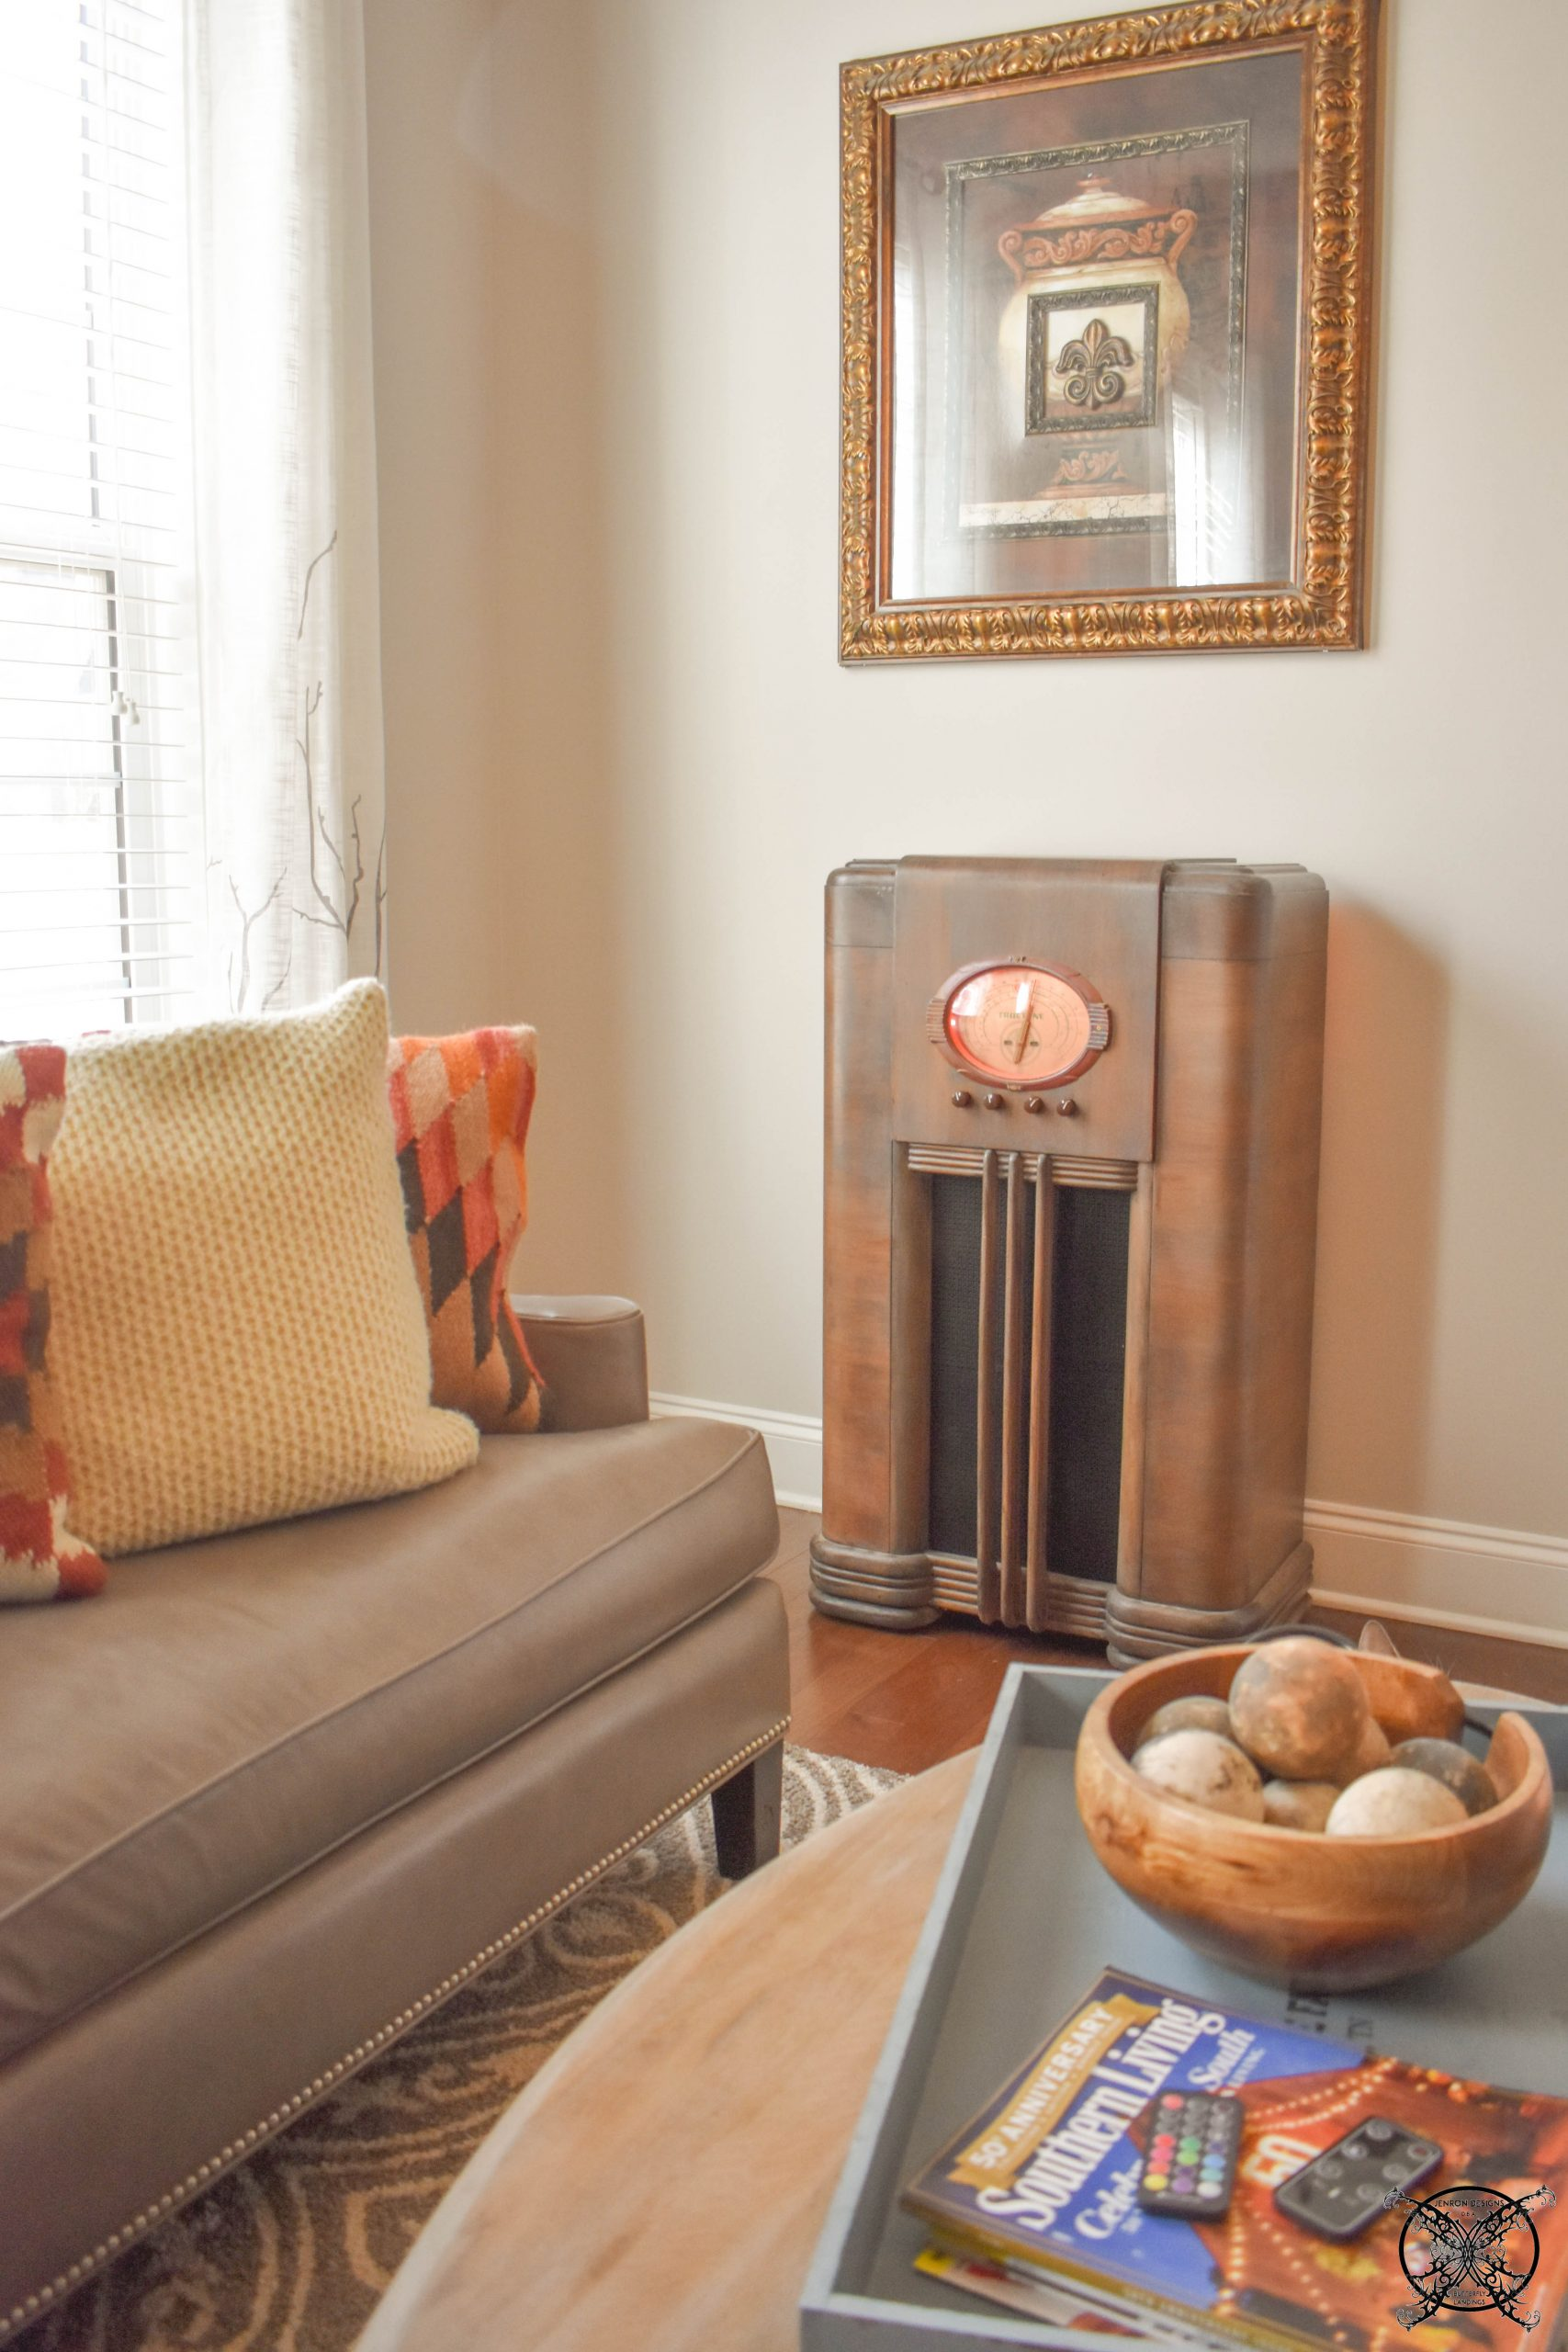 Antique Radio new home in Library JENRON DESIGNS.jpg